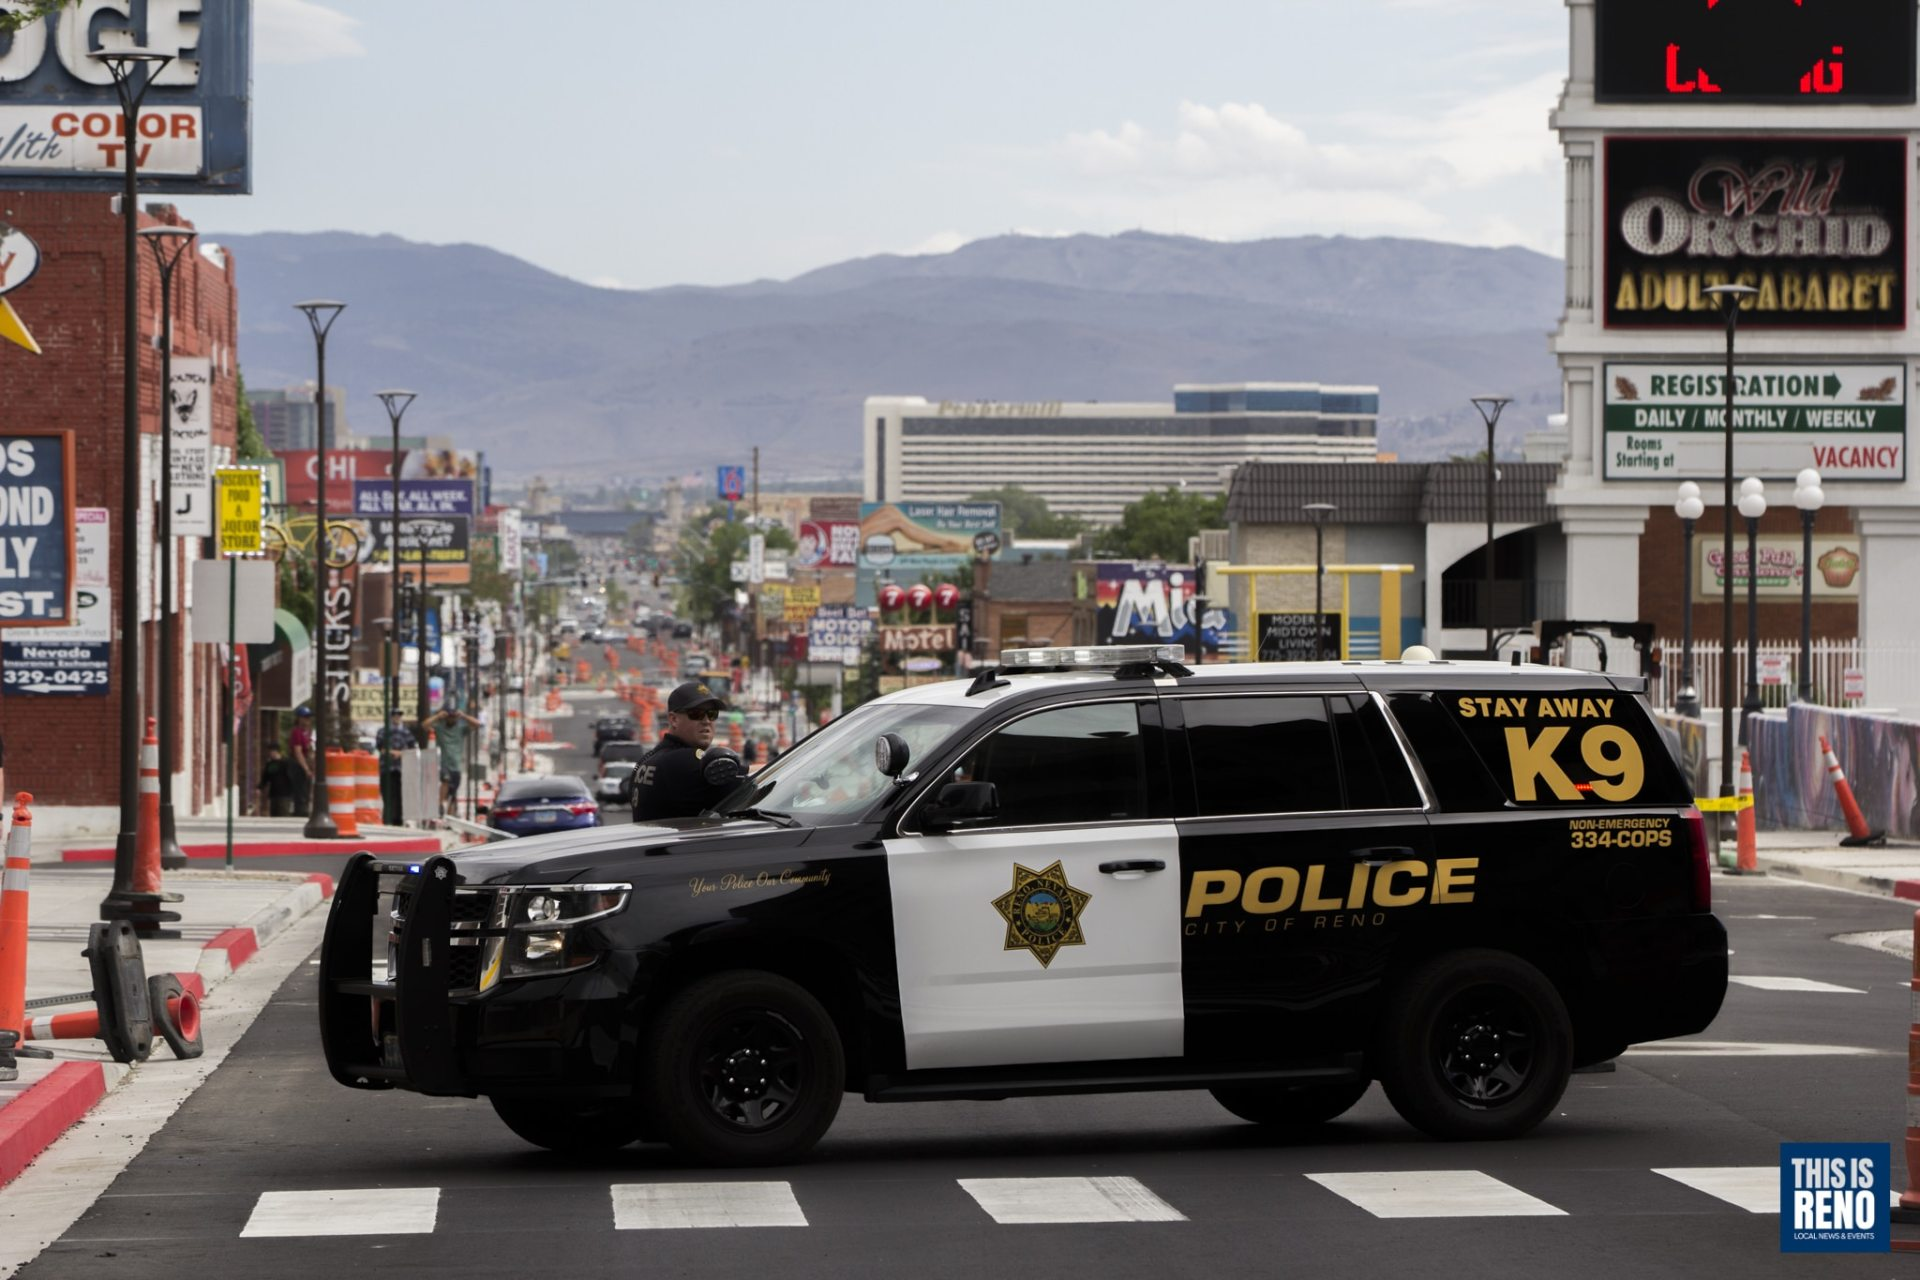 A Reno Police vehicle blocks Virginia Street on May 30, 2020.